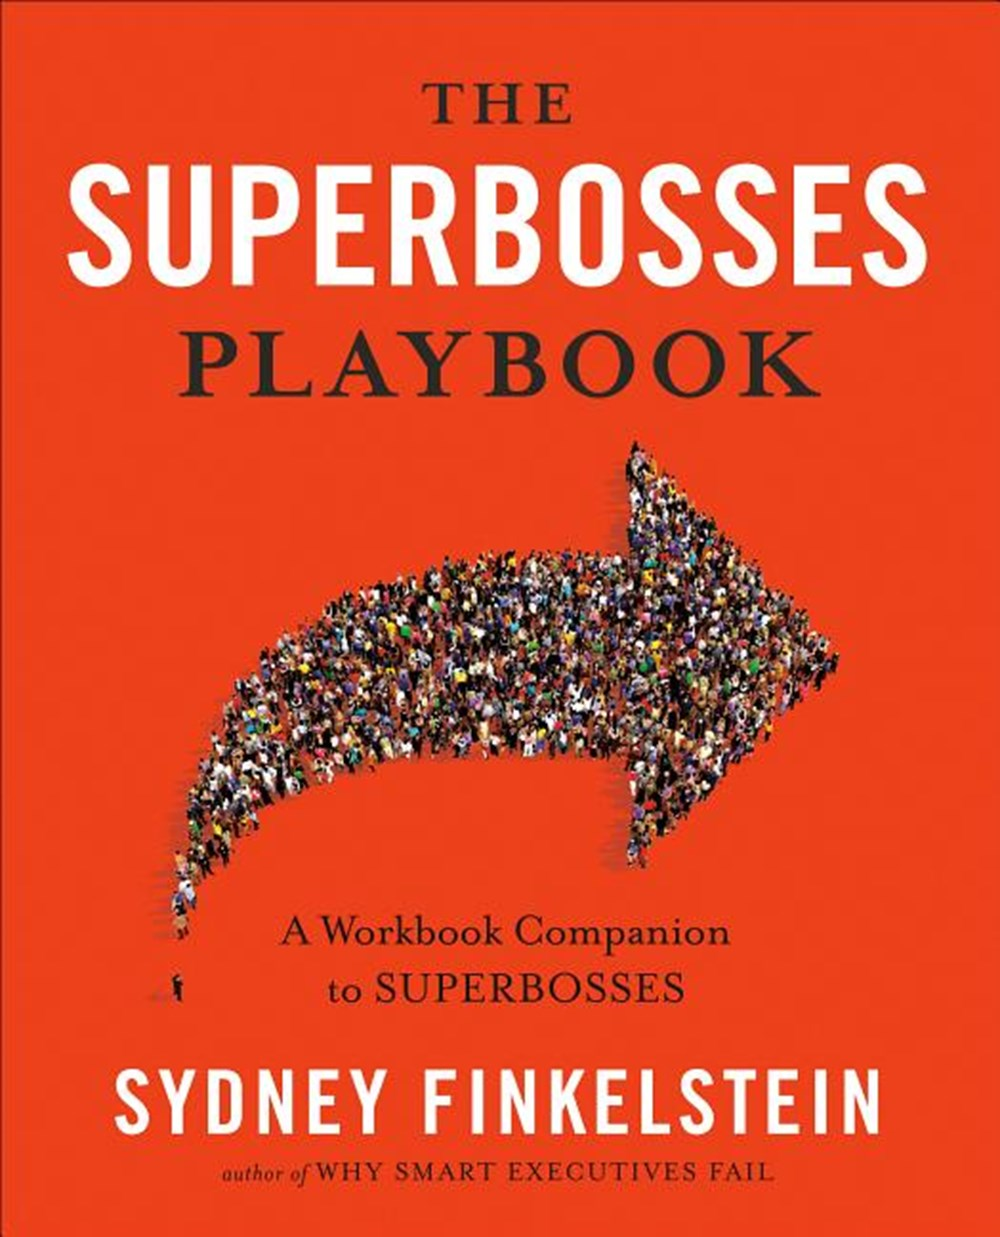 Superbosses Playbook A Workbook Companion to Superbosses